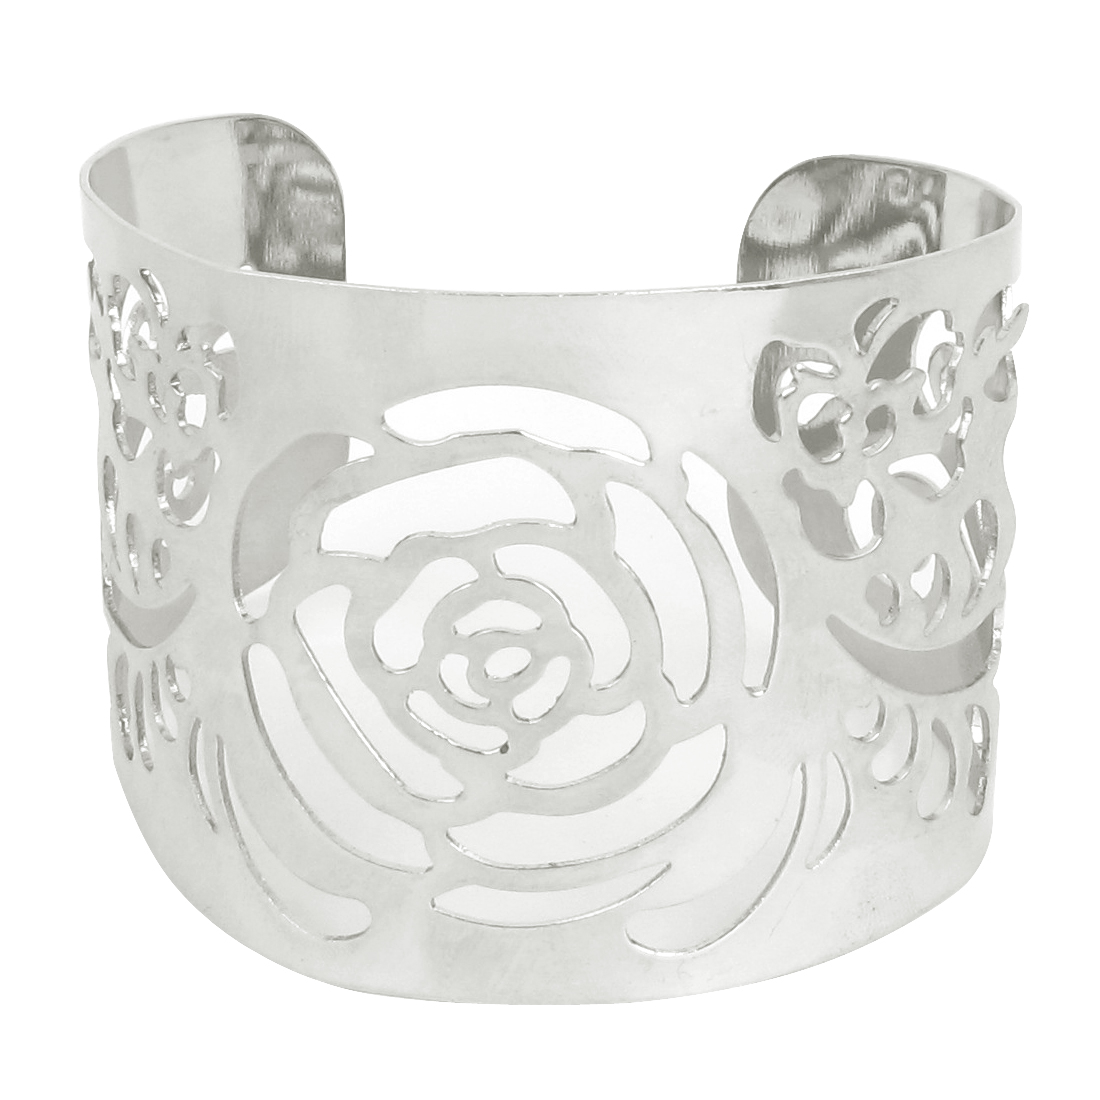 50mm Width Hollow Out Flower Pattern Wide Cuff Bangle Bracelet Silver Tone